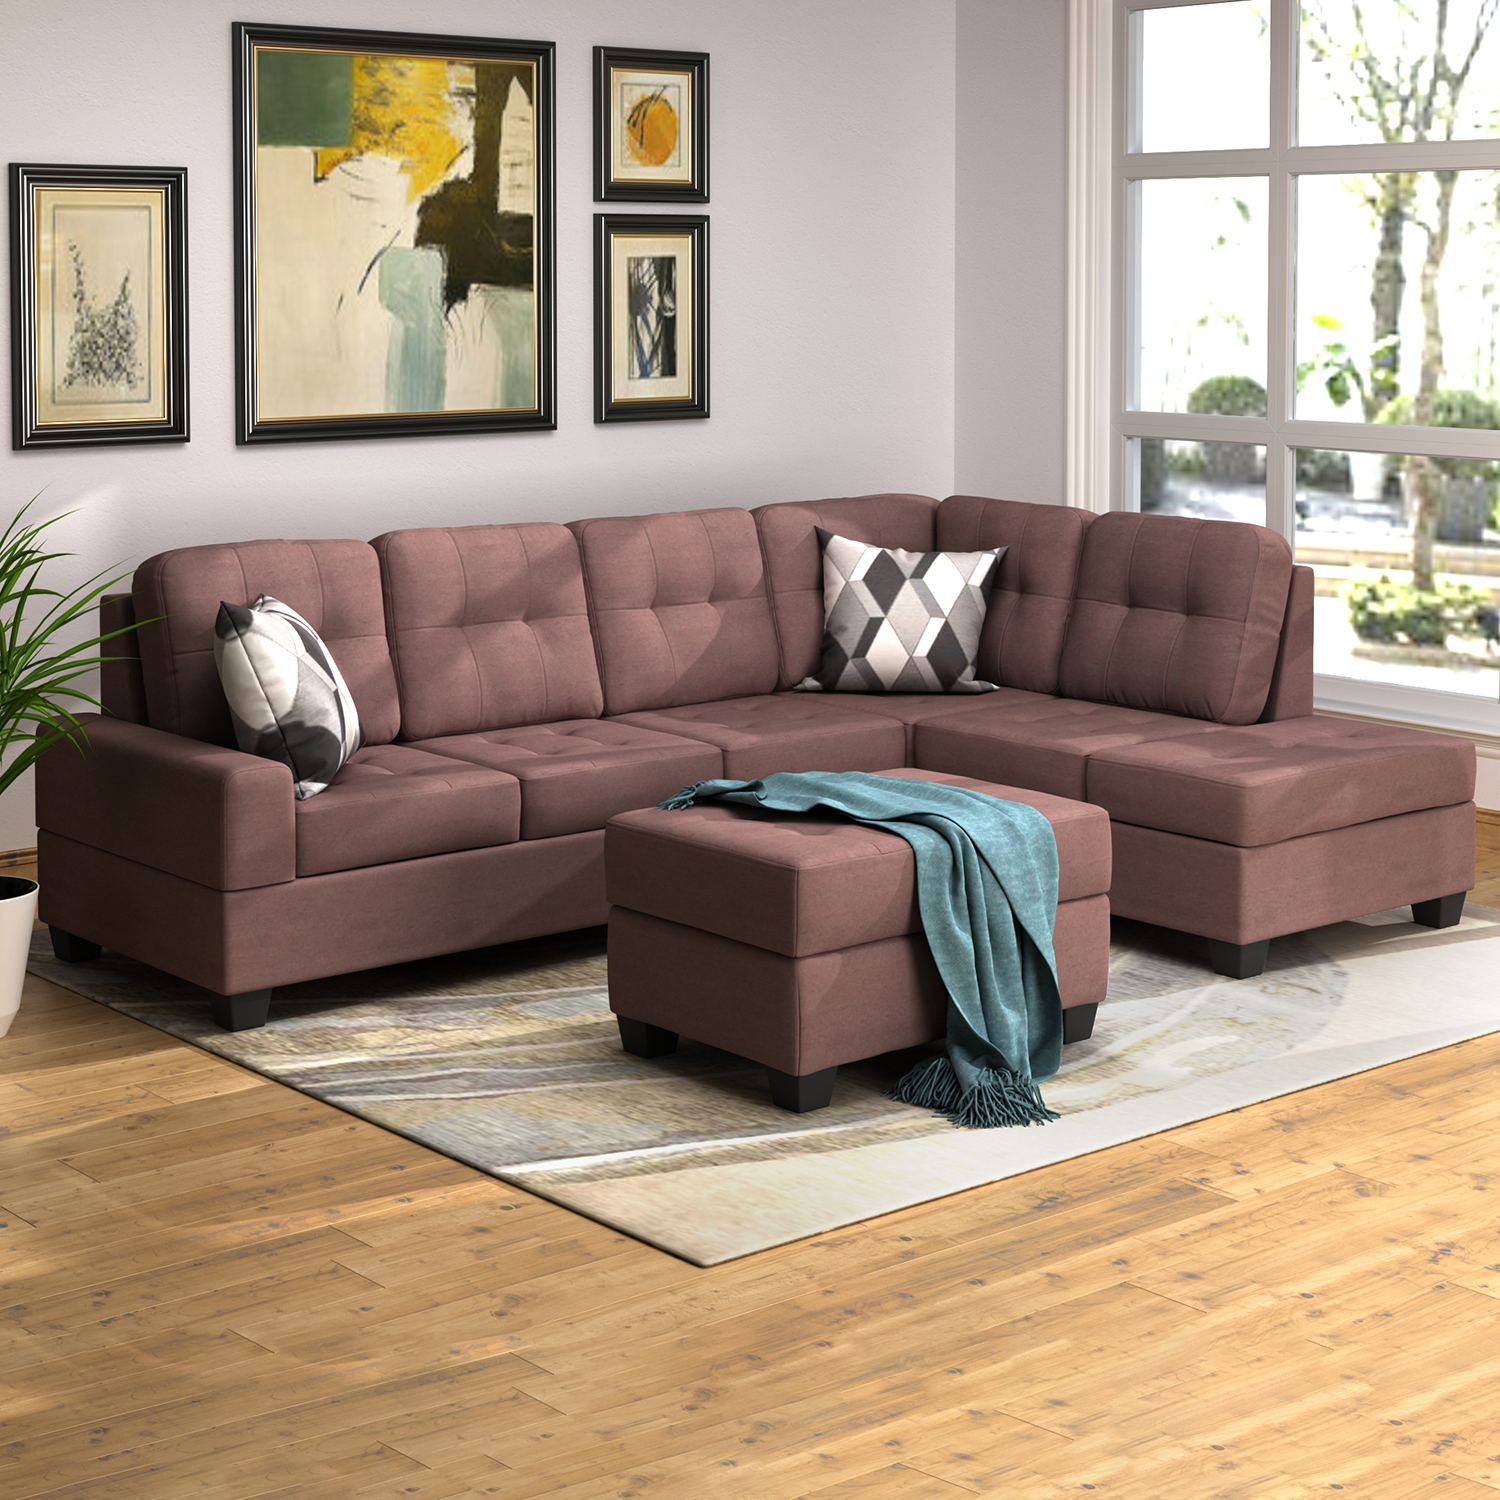 Well Known 3Pc Miles Leather Sectional Sofas With Chaise With Regard To 3 Piece Sectional Sofa Microfiber With Reversible Chaise (View 4 of 25)